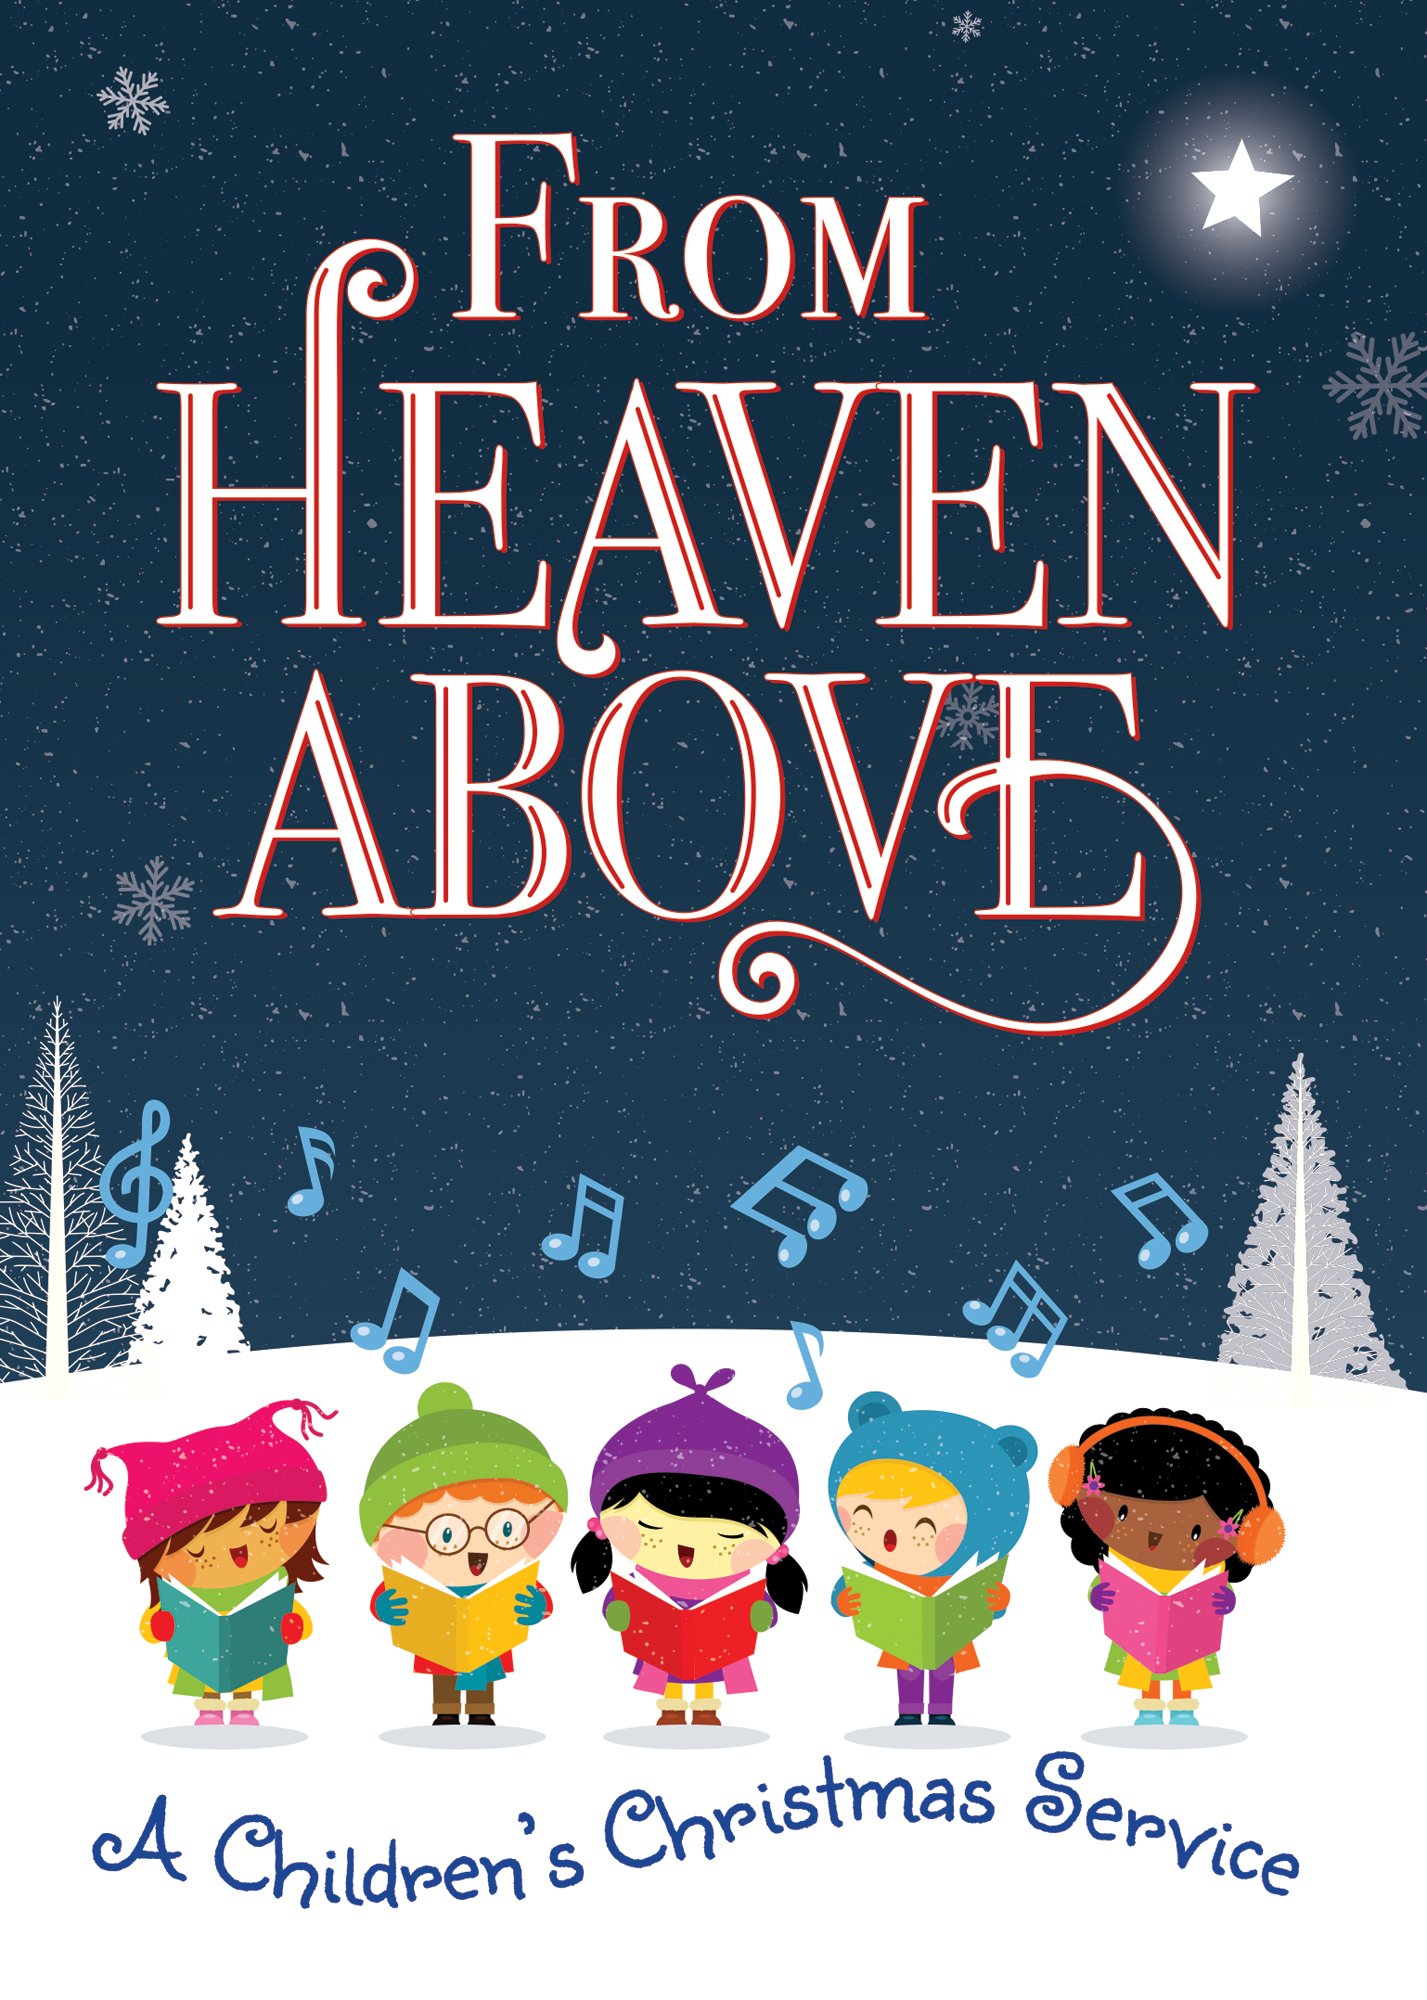 From Heaven Above Children\'s Christmas Service.